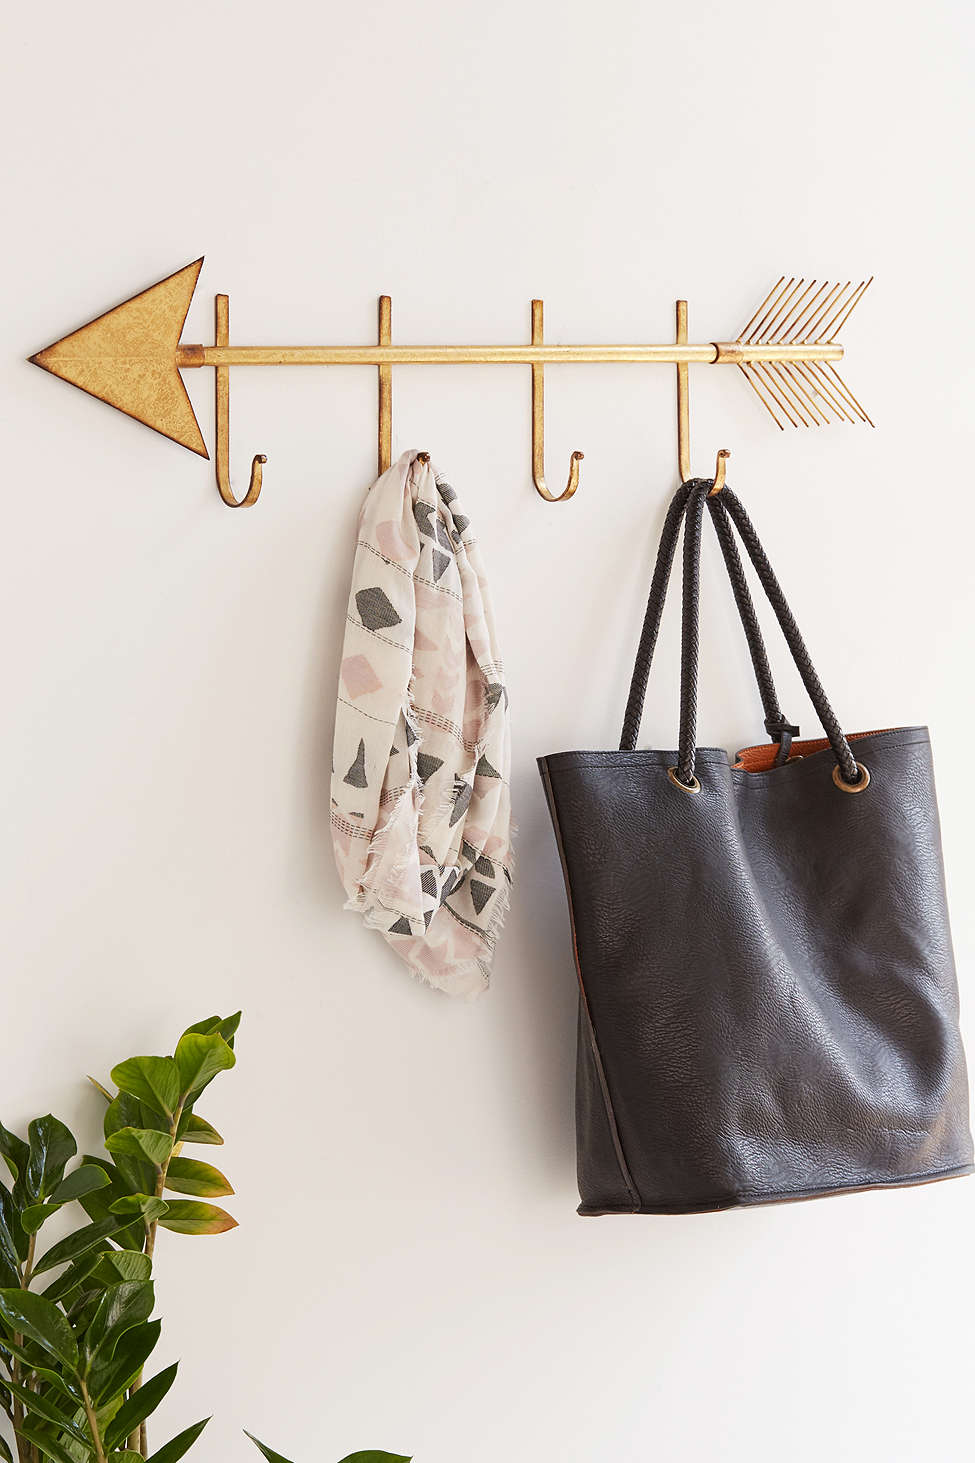 Arrow wall hook from Urban Outfitters